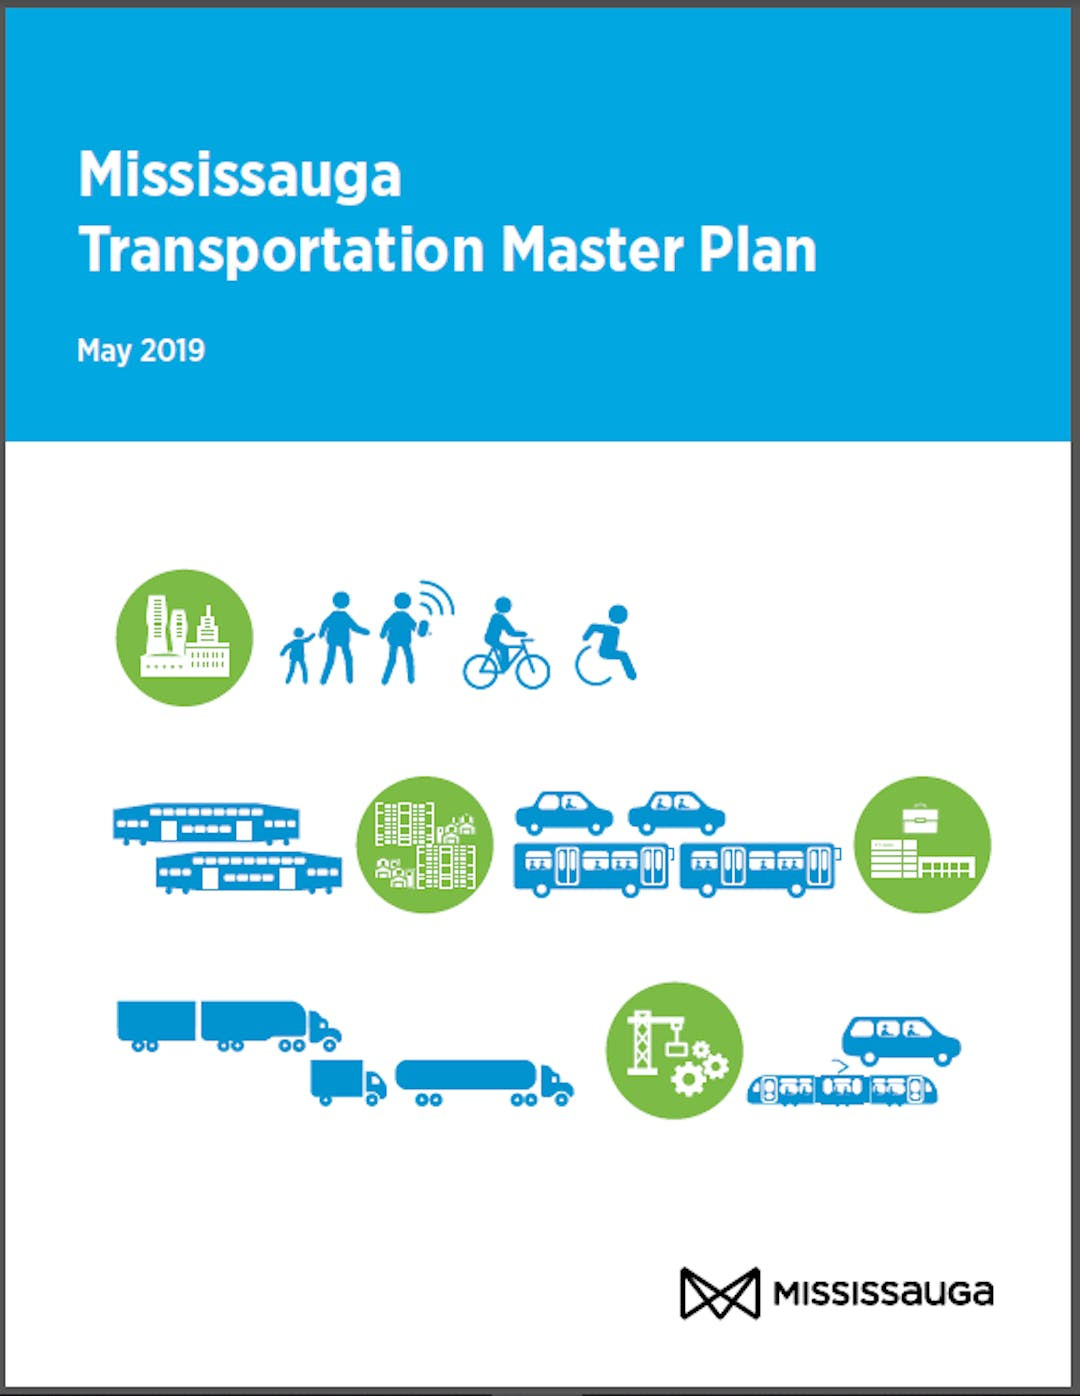 Image of the document cover for the Mississauga Transportation Master Plan, features icons of movement by walking, cycling, rolling in a wheelchair, ridehailing as well as cars, trucks, buses and train cars.